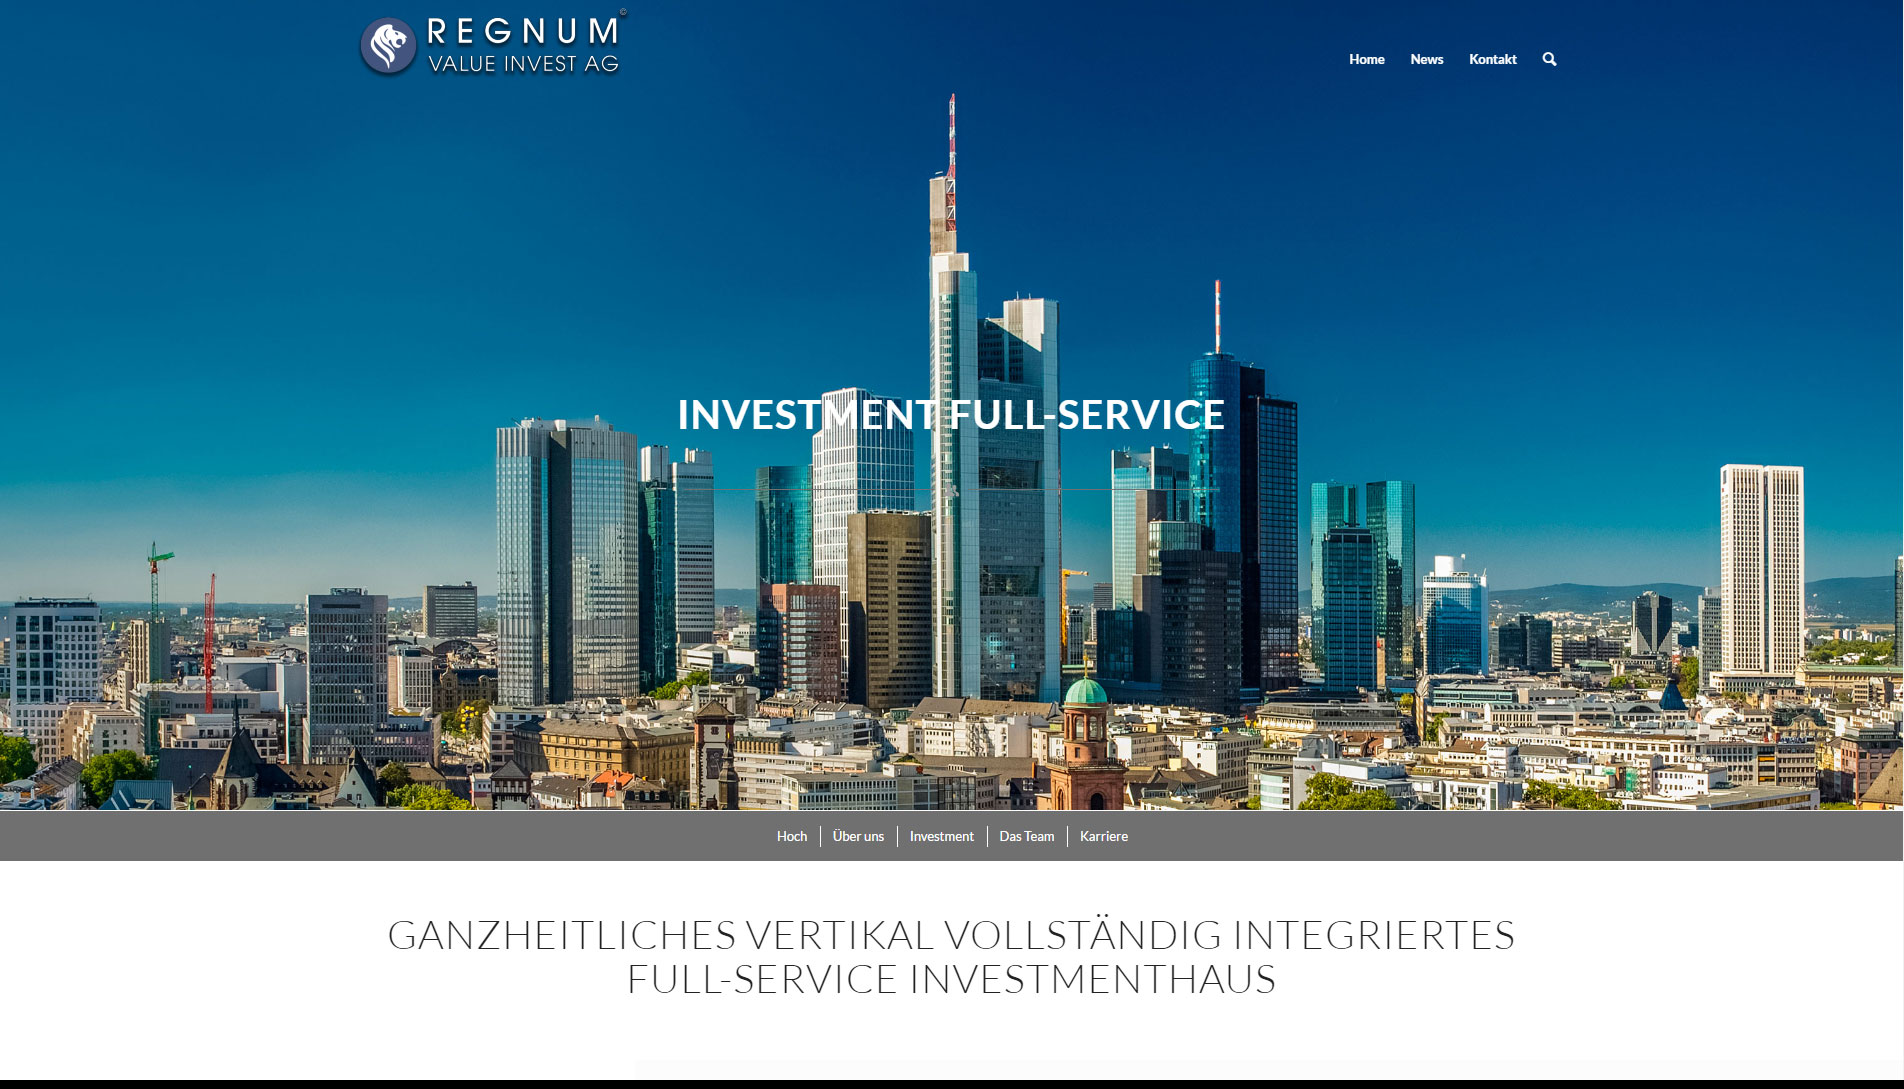 REGNUM VALUE INVEST AG